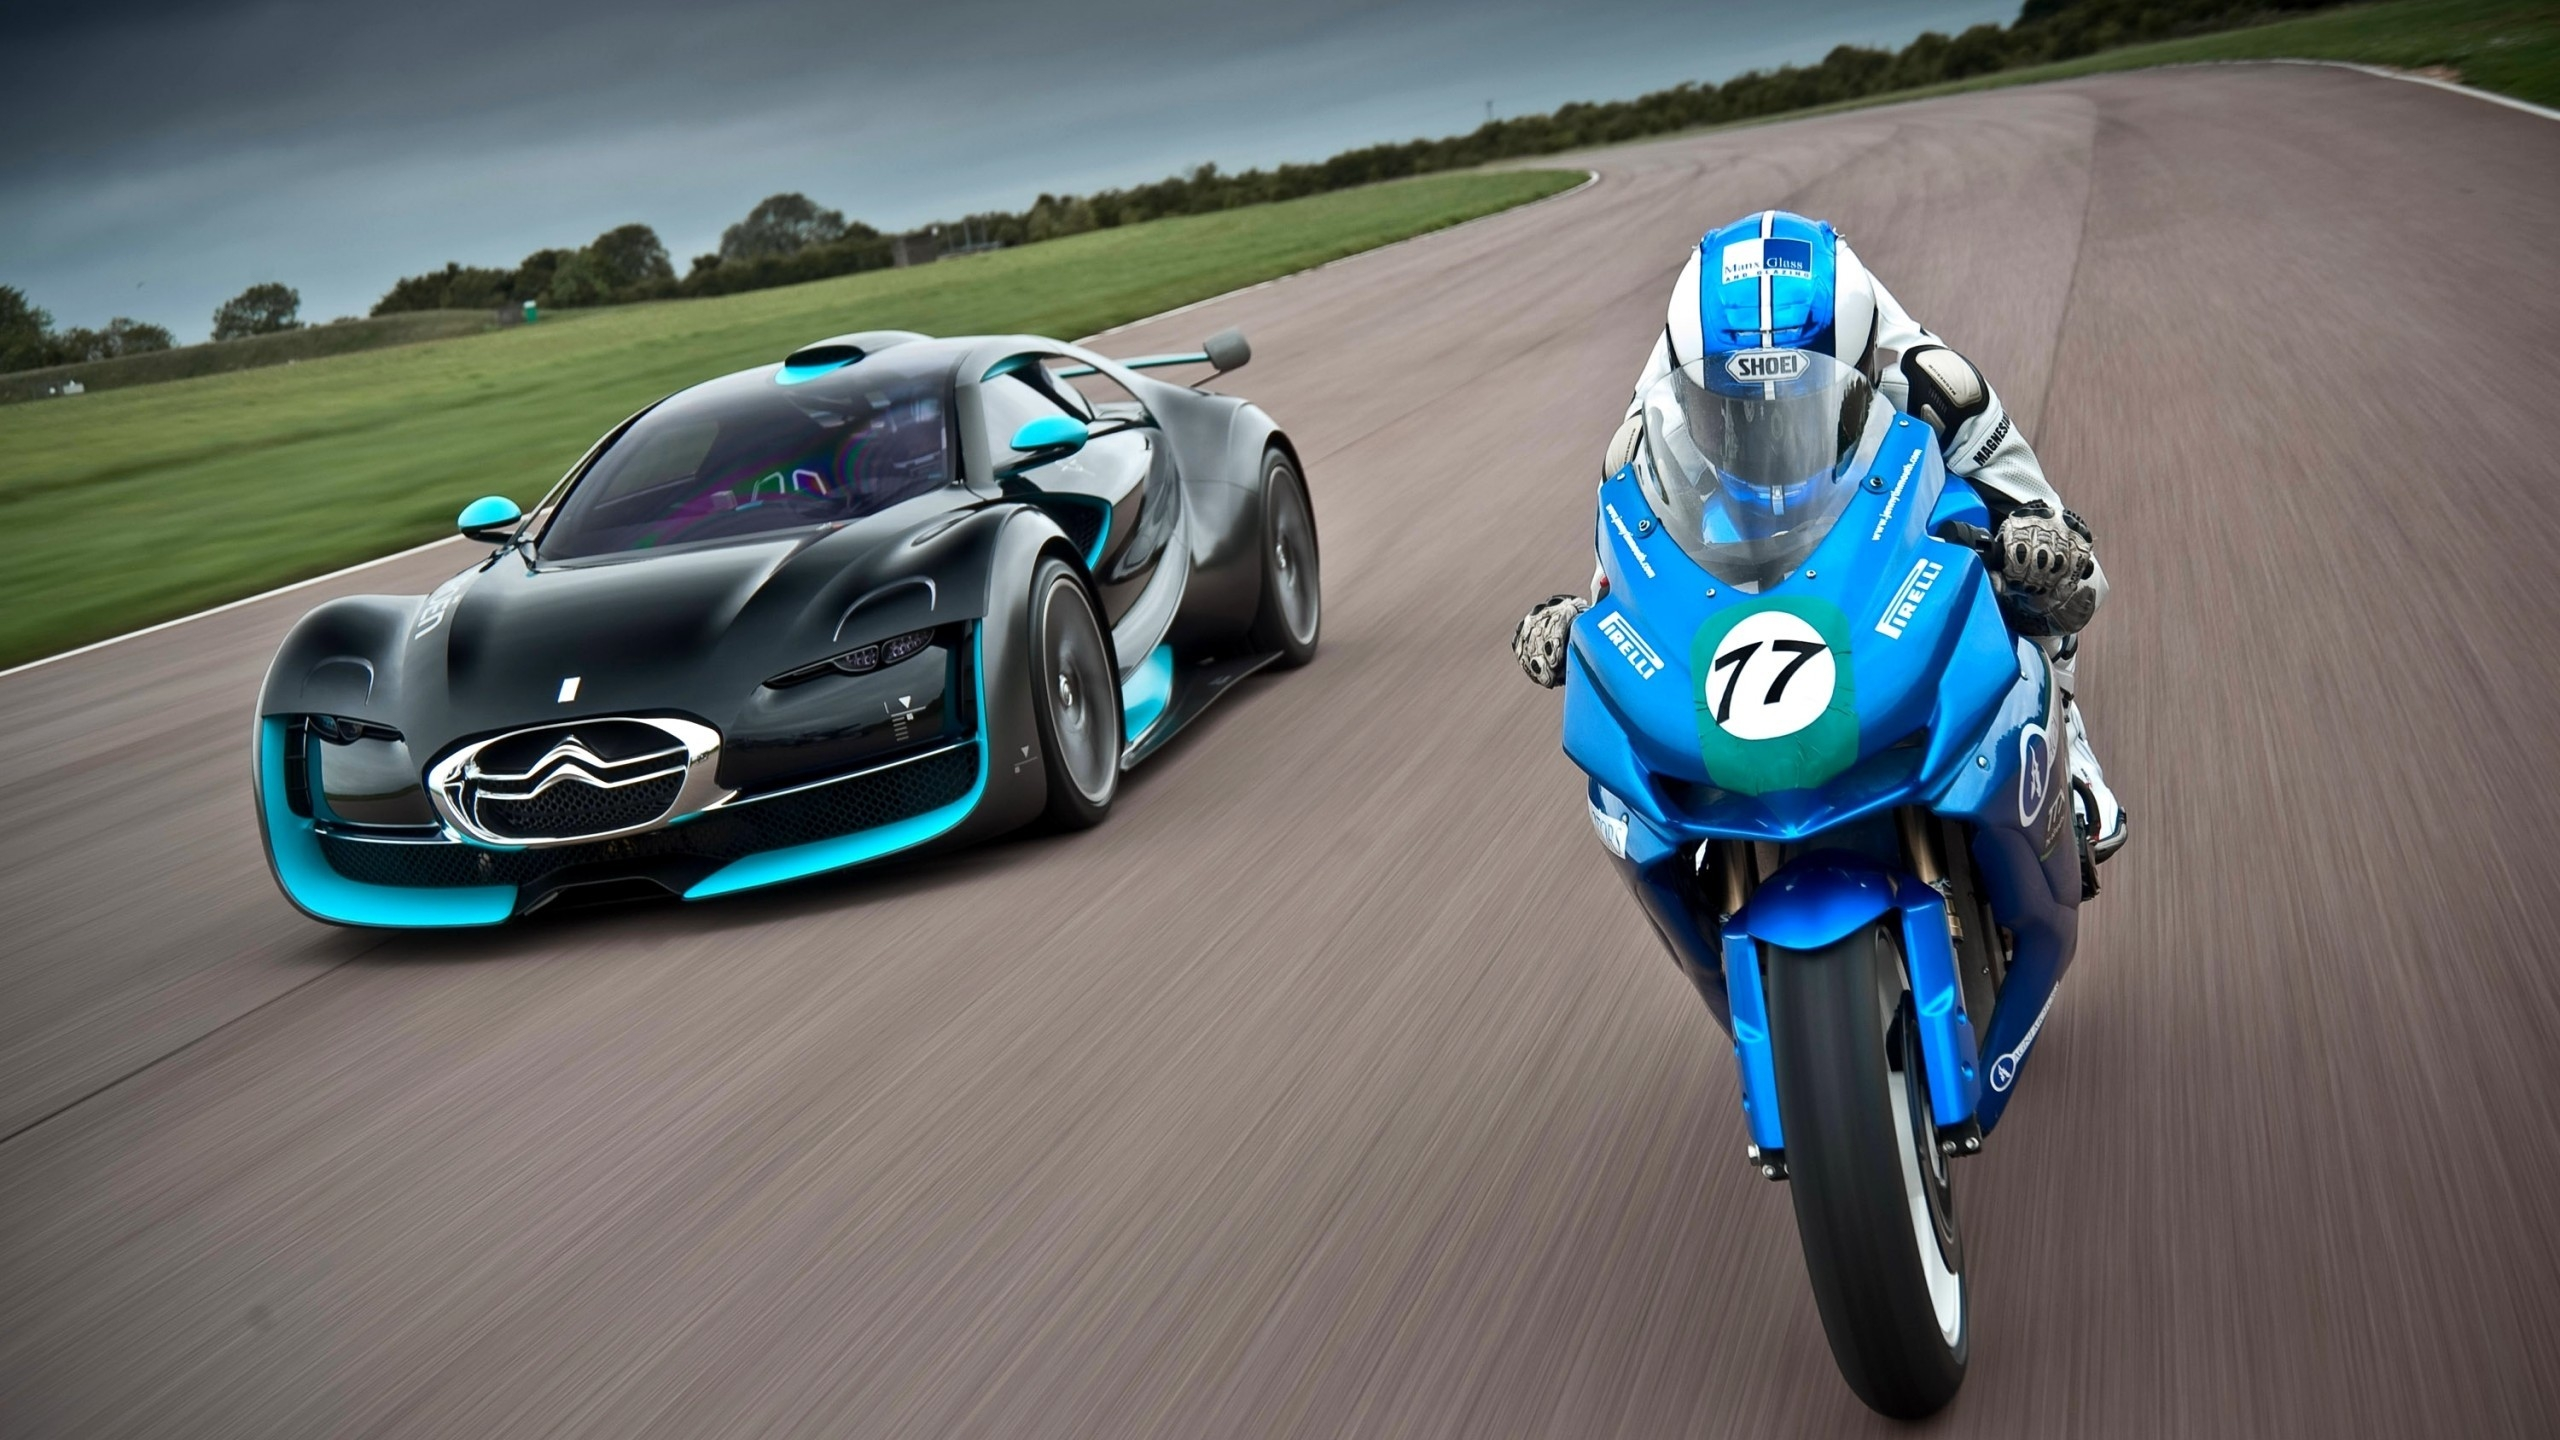 citroen and moto race 2560x1440 wallpaper 14313